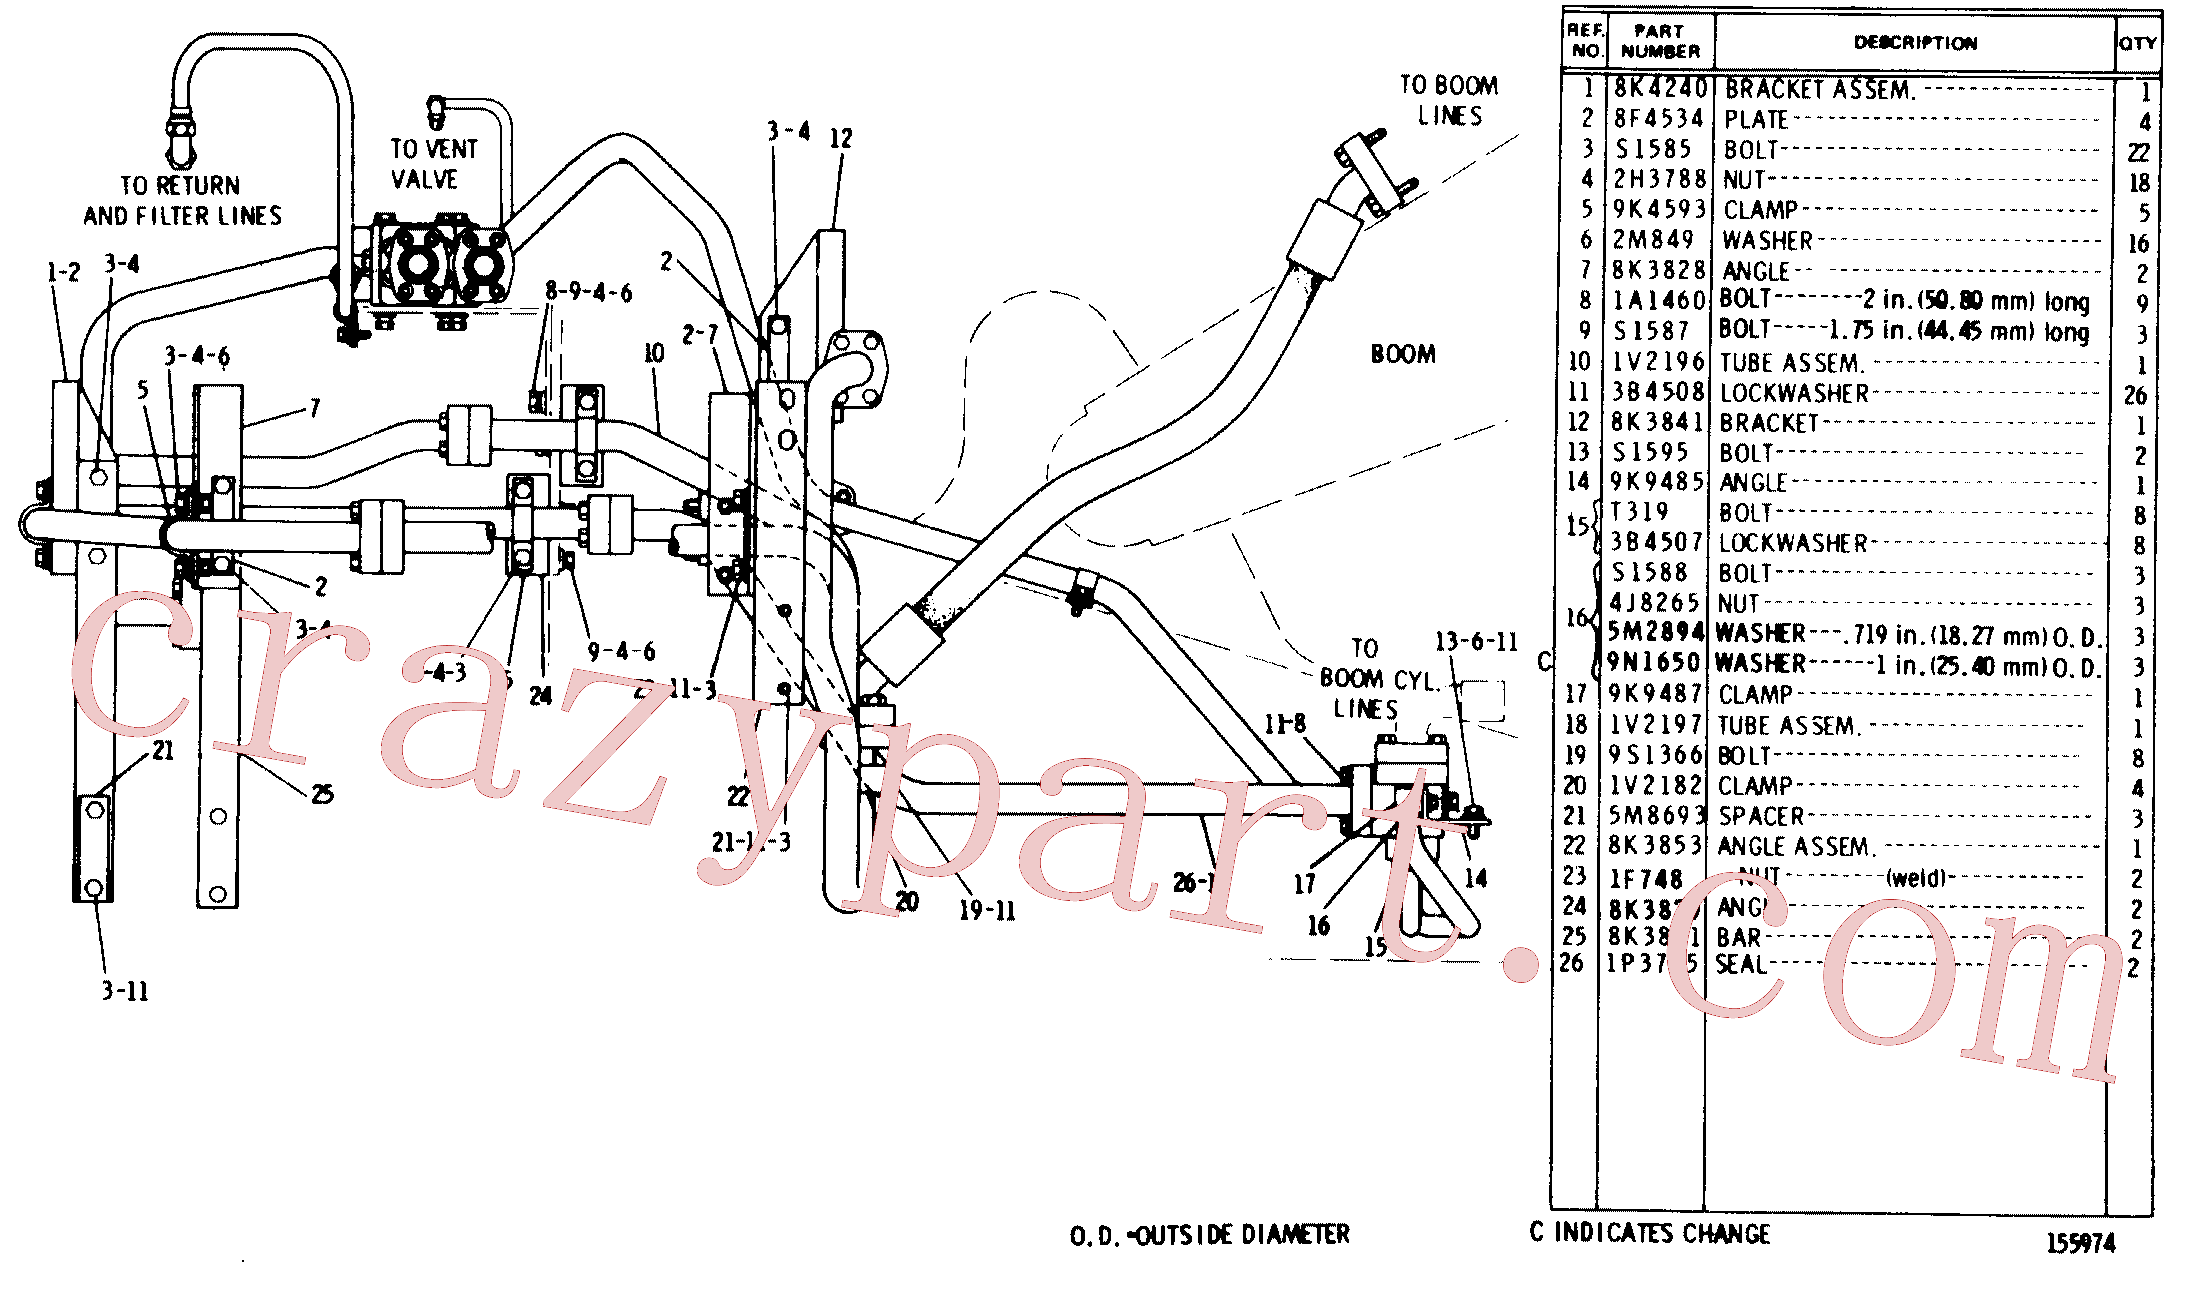 CAT 8K-3969 for 235 Excavator(EXC) hydraulic system 8K-2628 Assembly